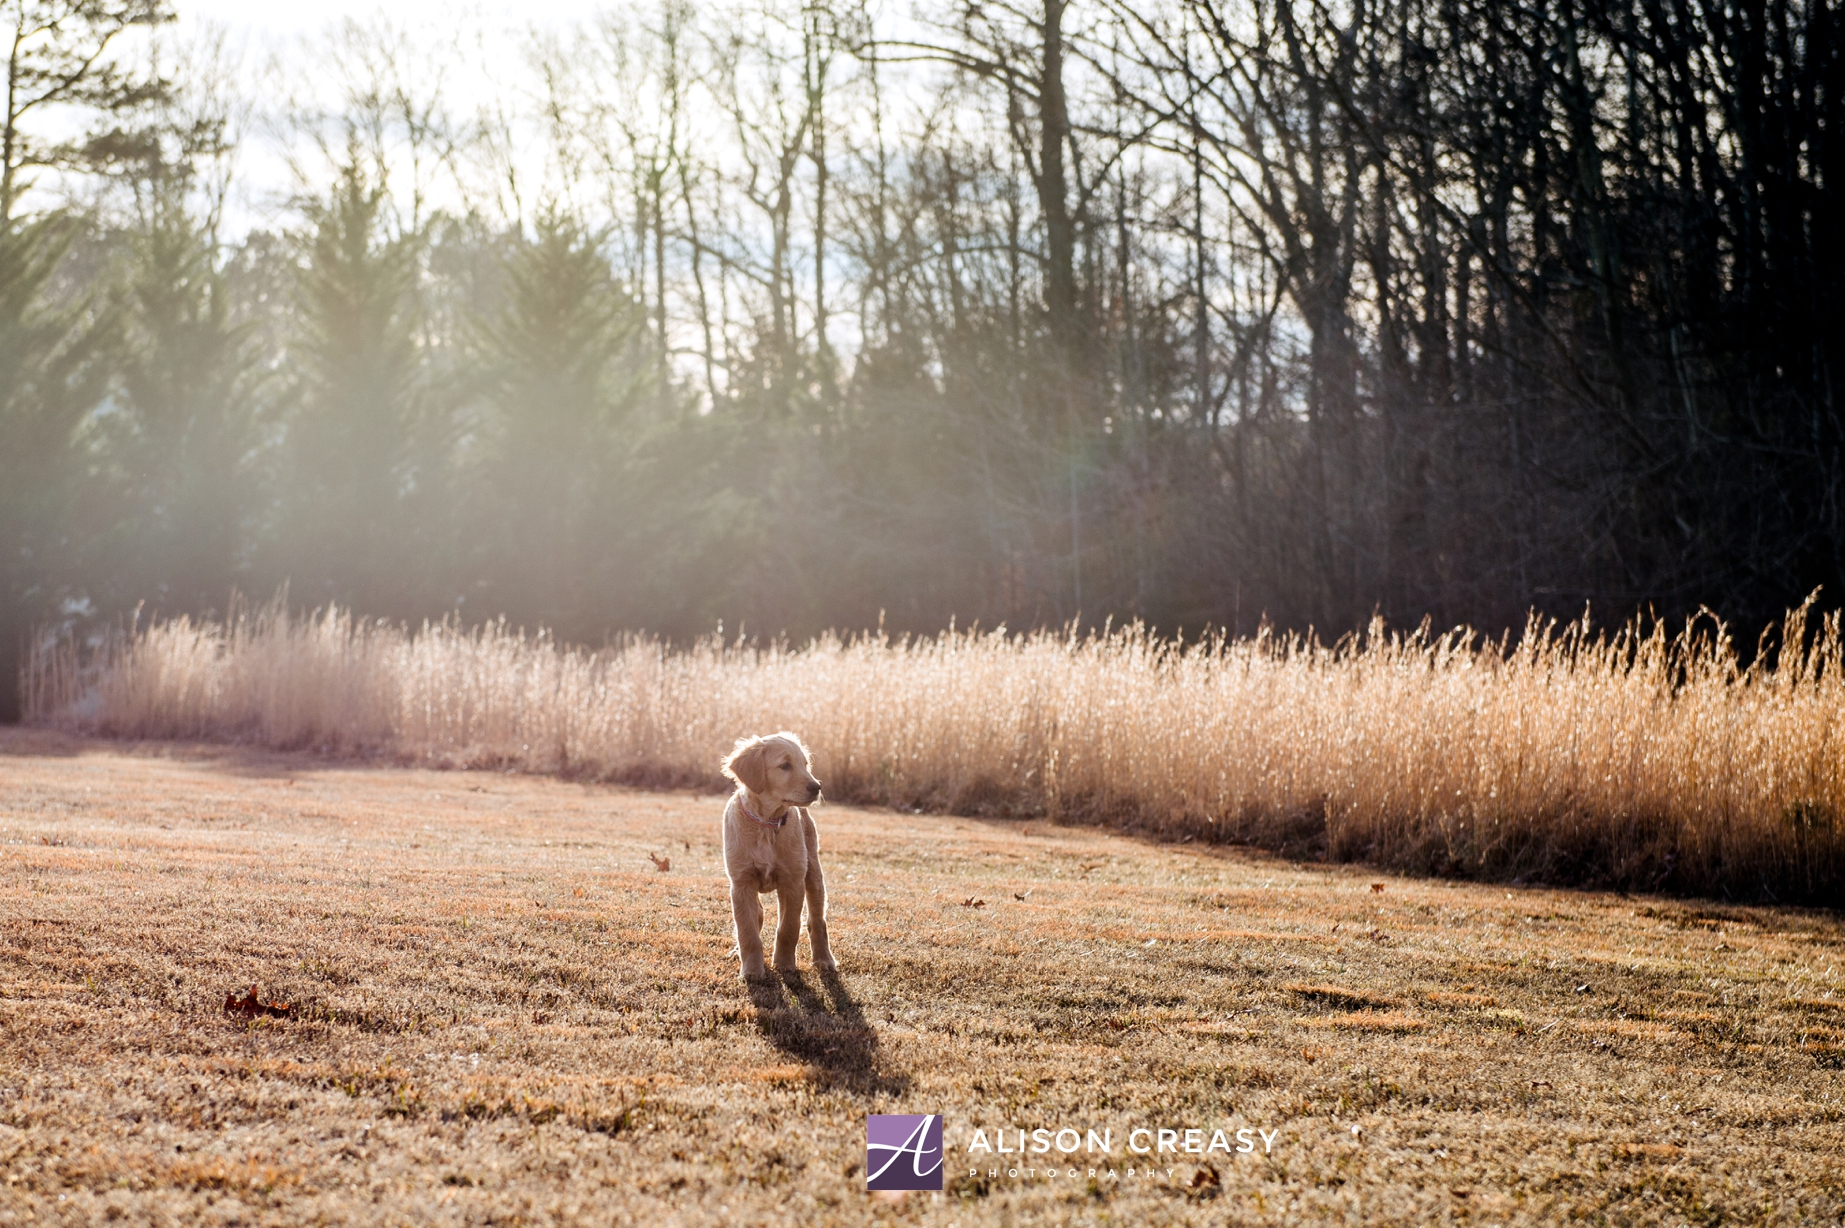 Alison-Creasy-Photography-Lynchburg-VA-Pet-Photographer_0013.jpg